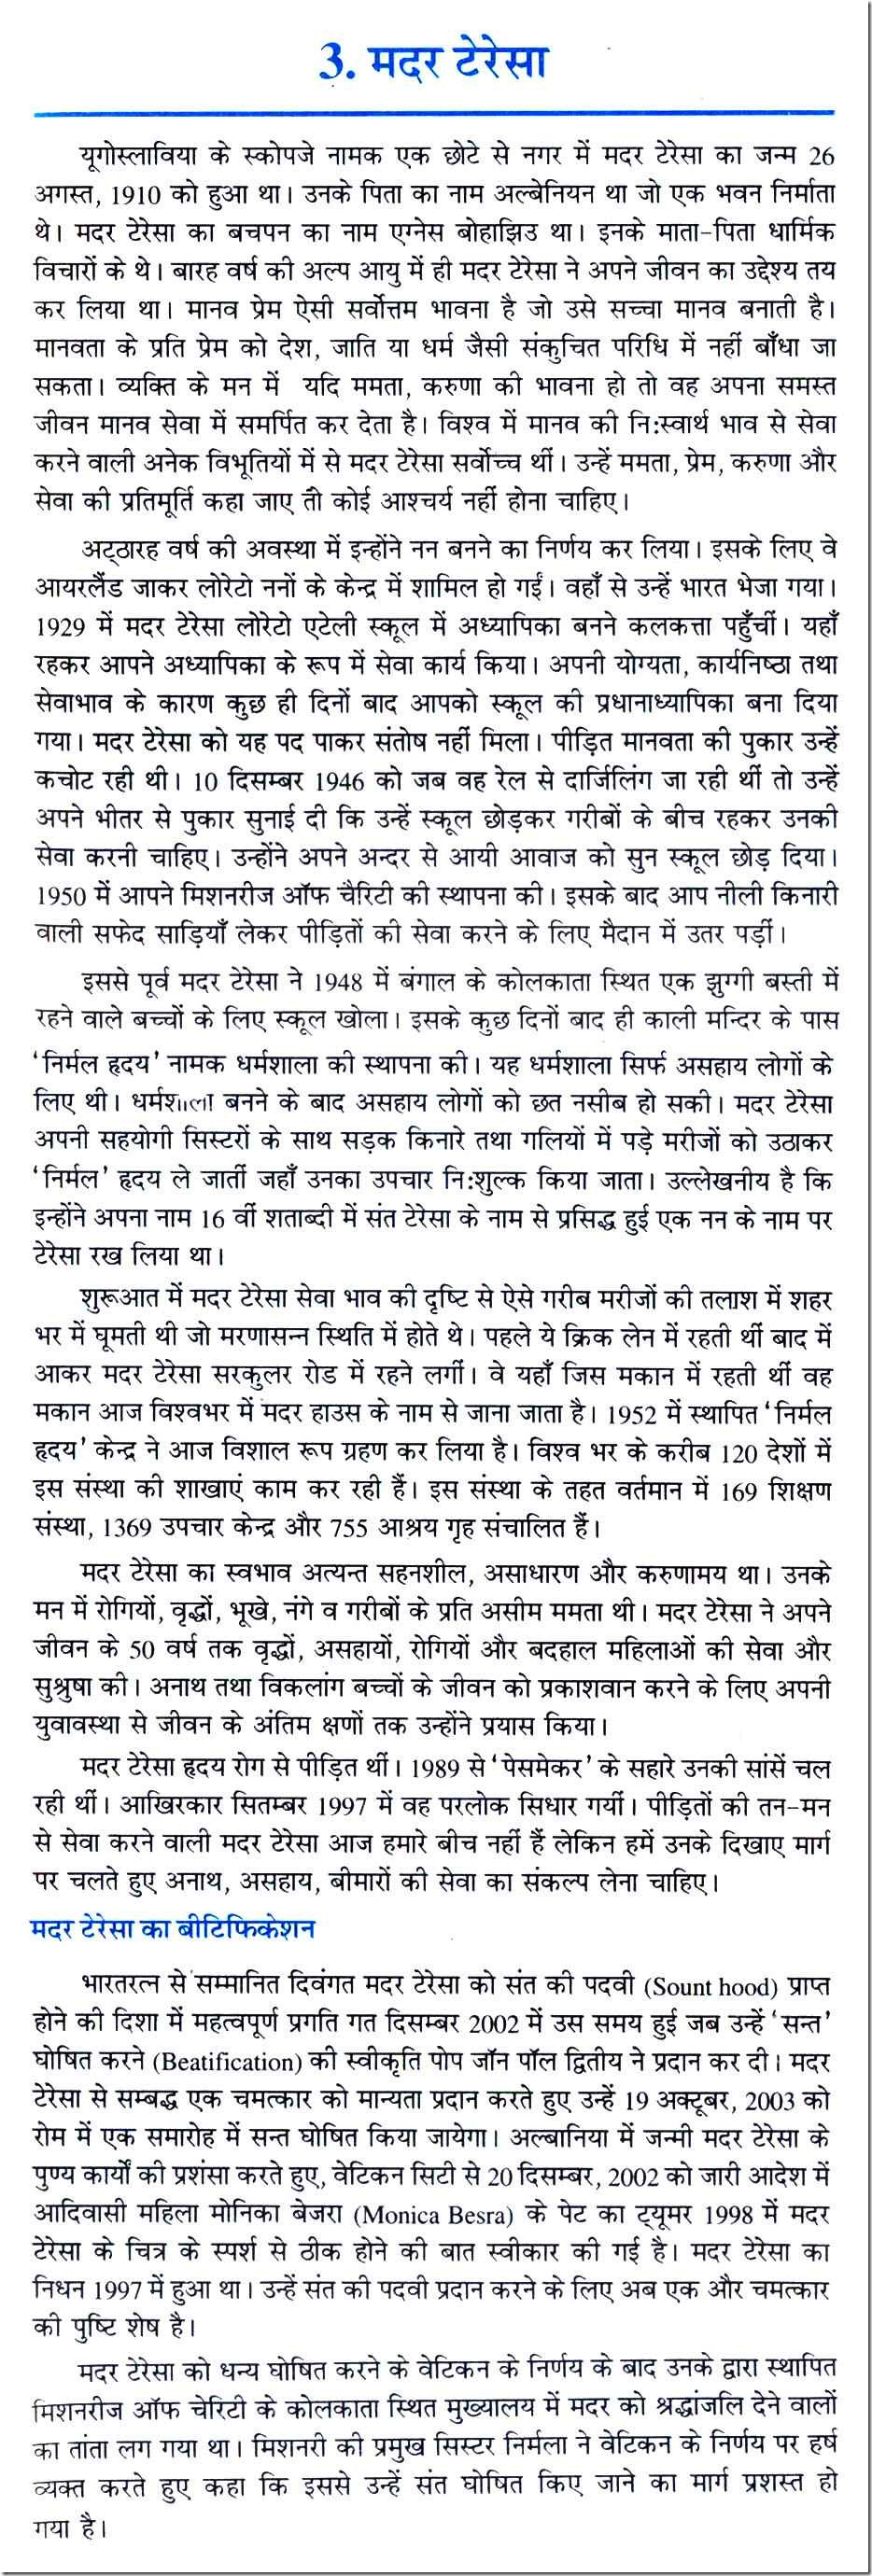 014 0020003 Thumb Essay Example About Surprising Mom In Hindi Being A Hero And Dad Full